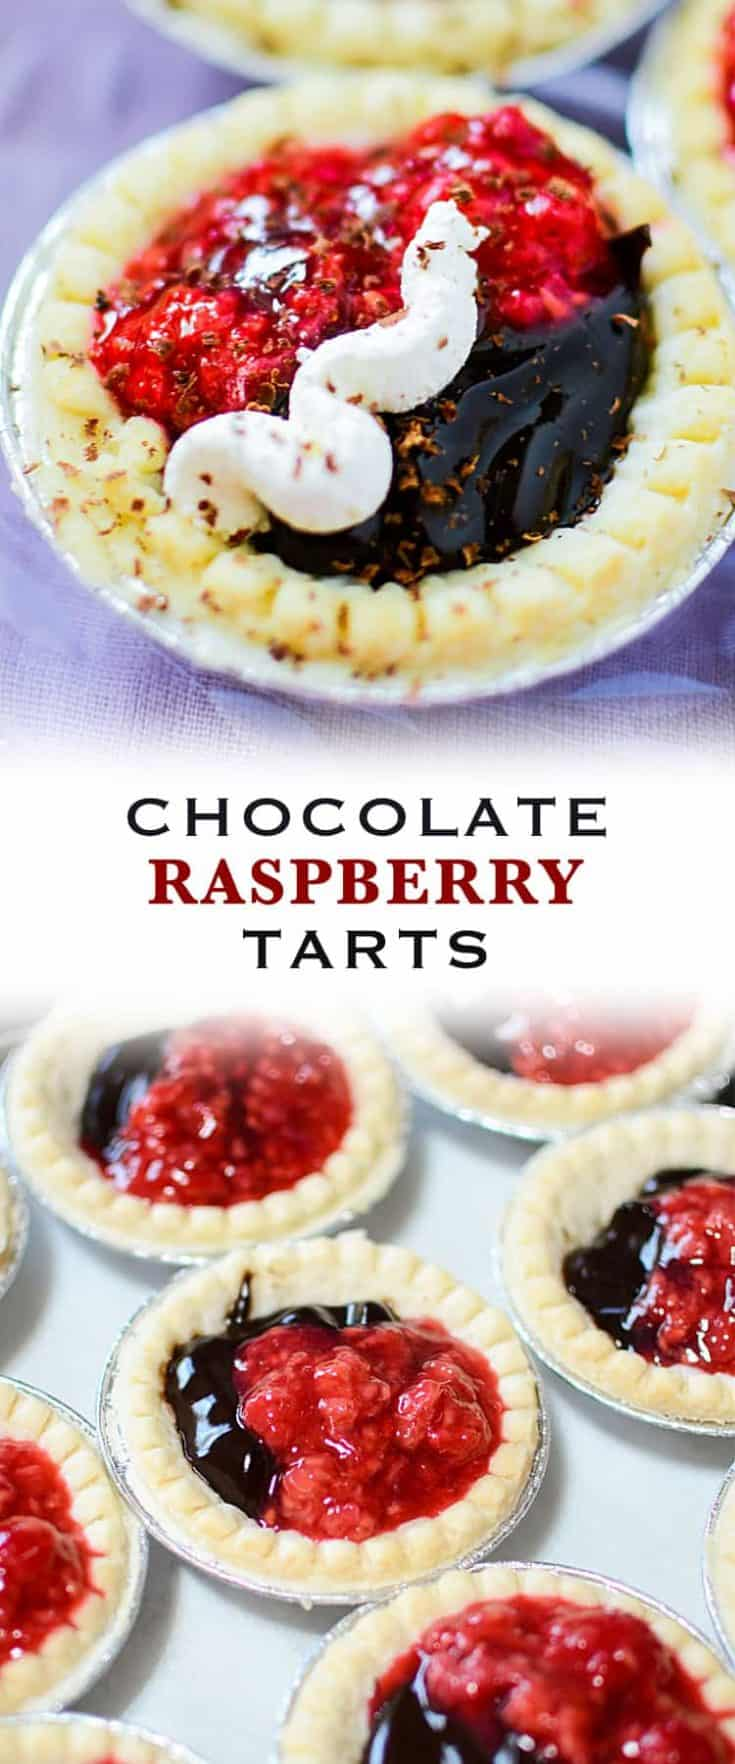 Chocolate Raspberry Tarts are as simple and easy recipe that is full-bodied in flavour. This quick tart dessert combines the creaminess of chocolate with the tang of a raspberry sauce. #tarts #tartrecipe #dessert